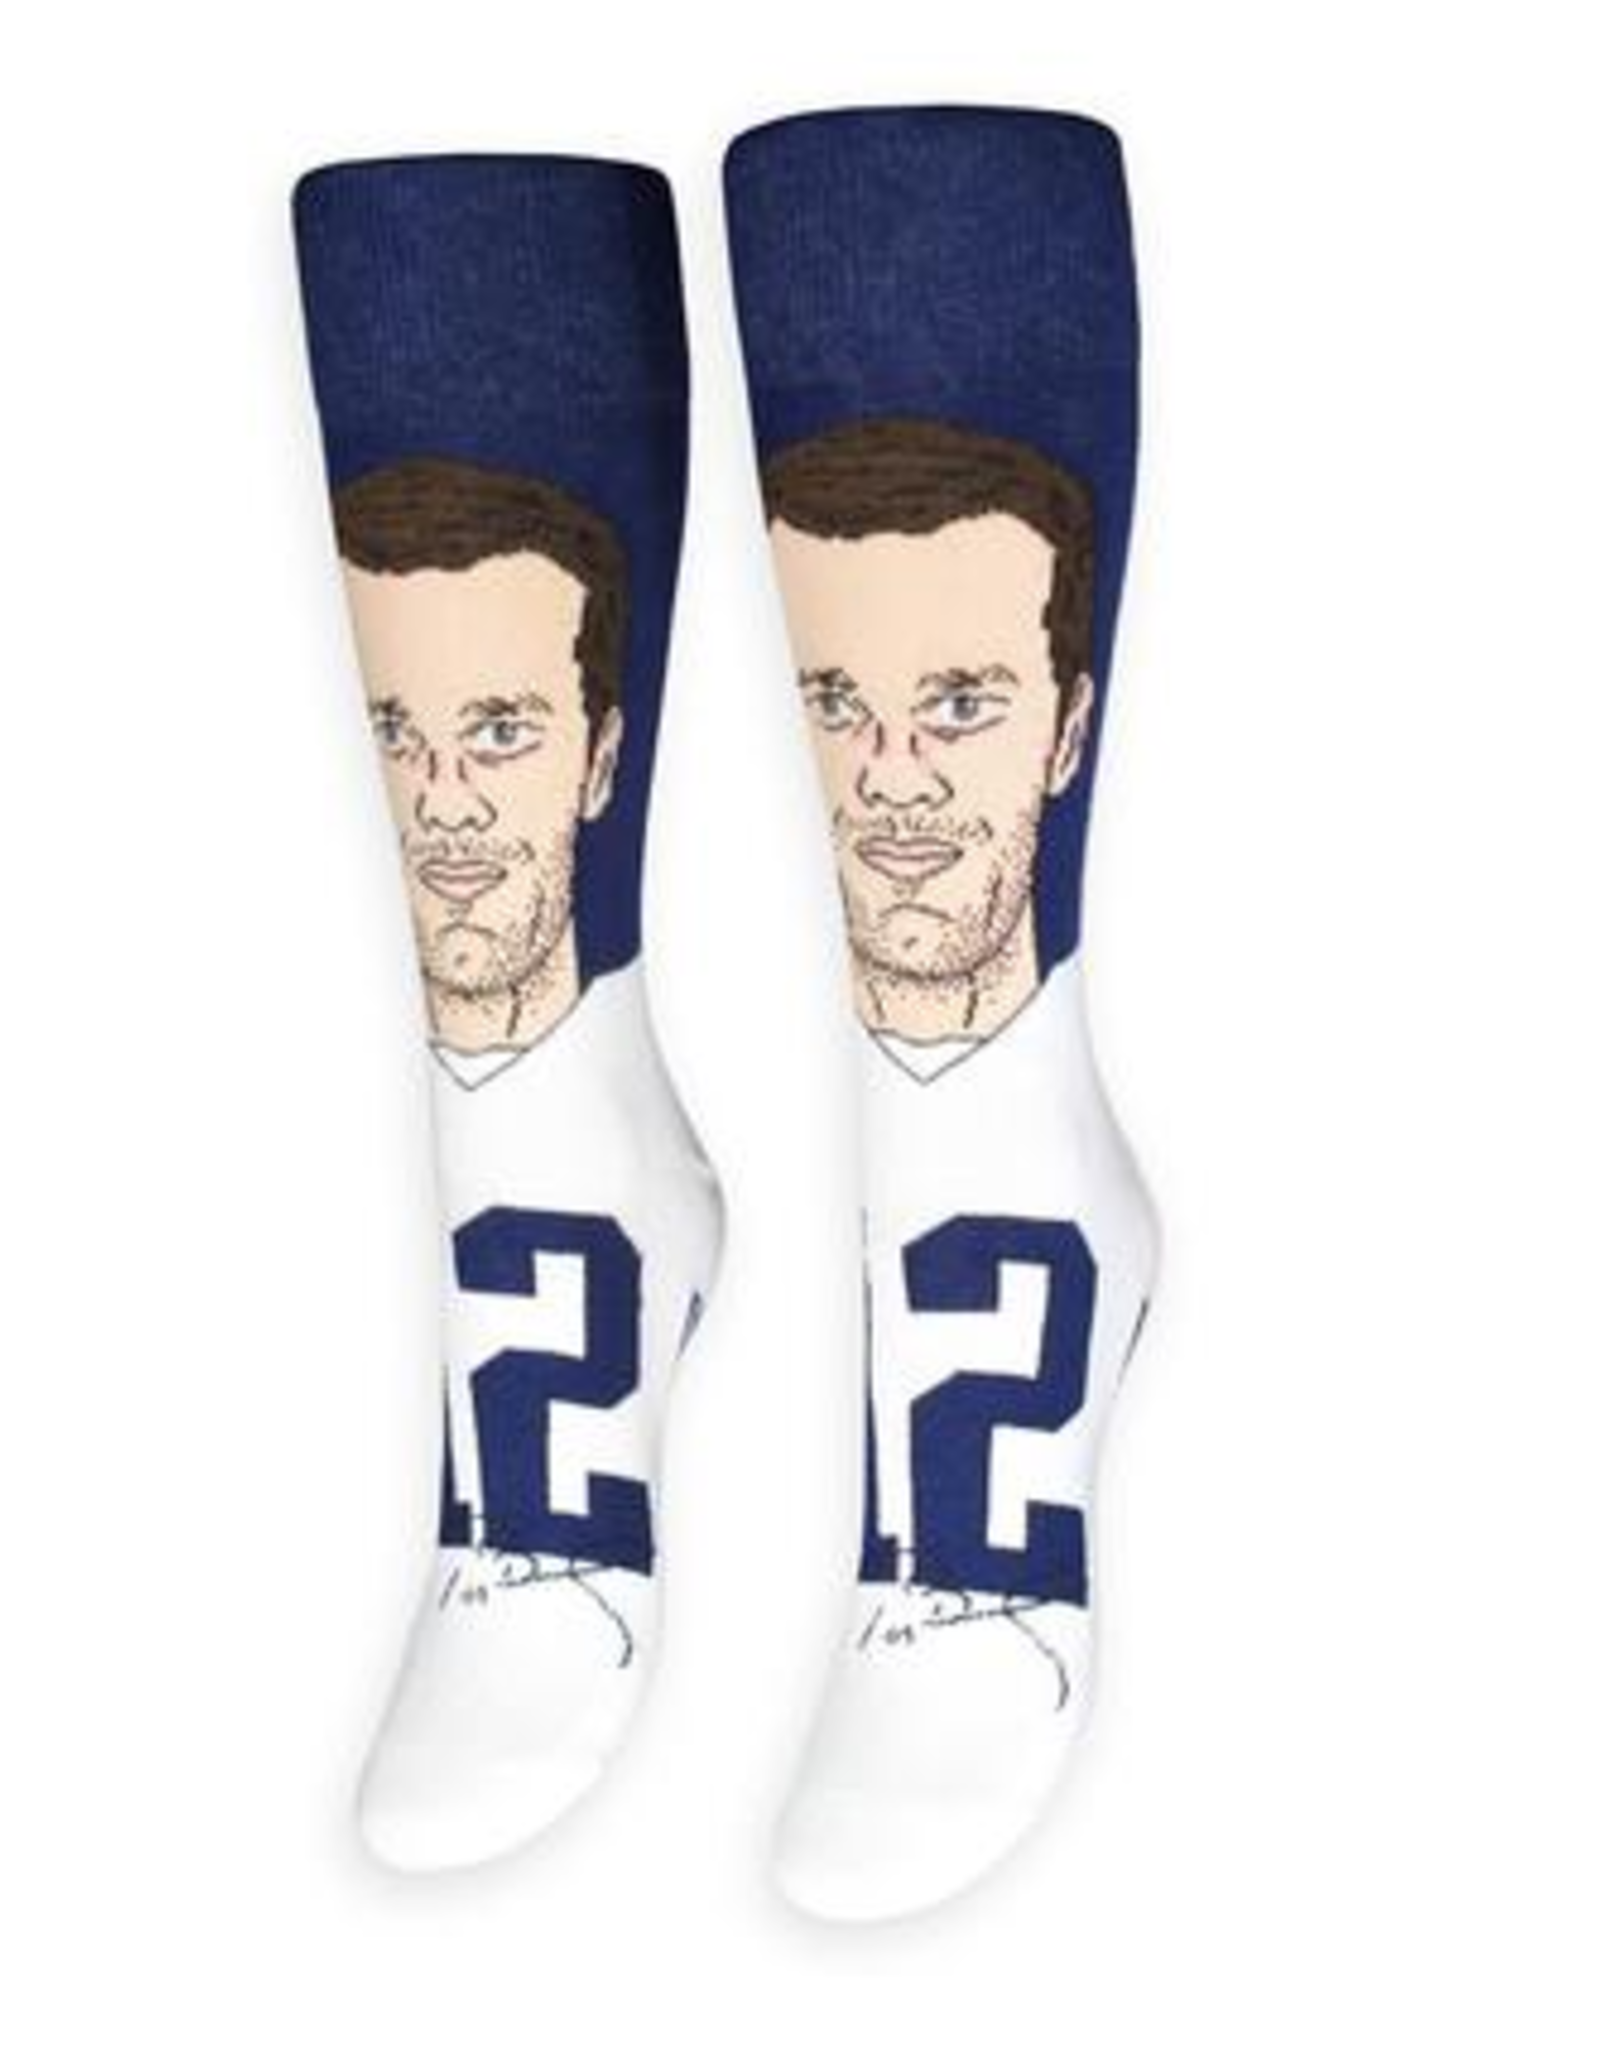 Tom Brady Football Socks